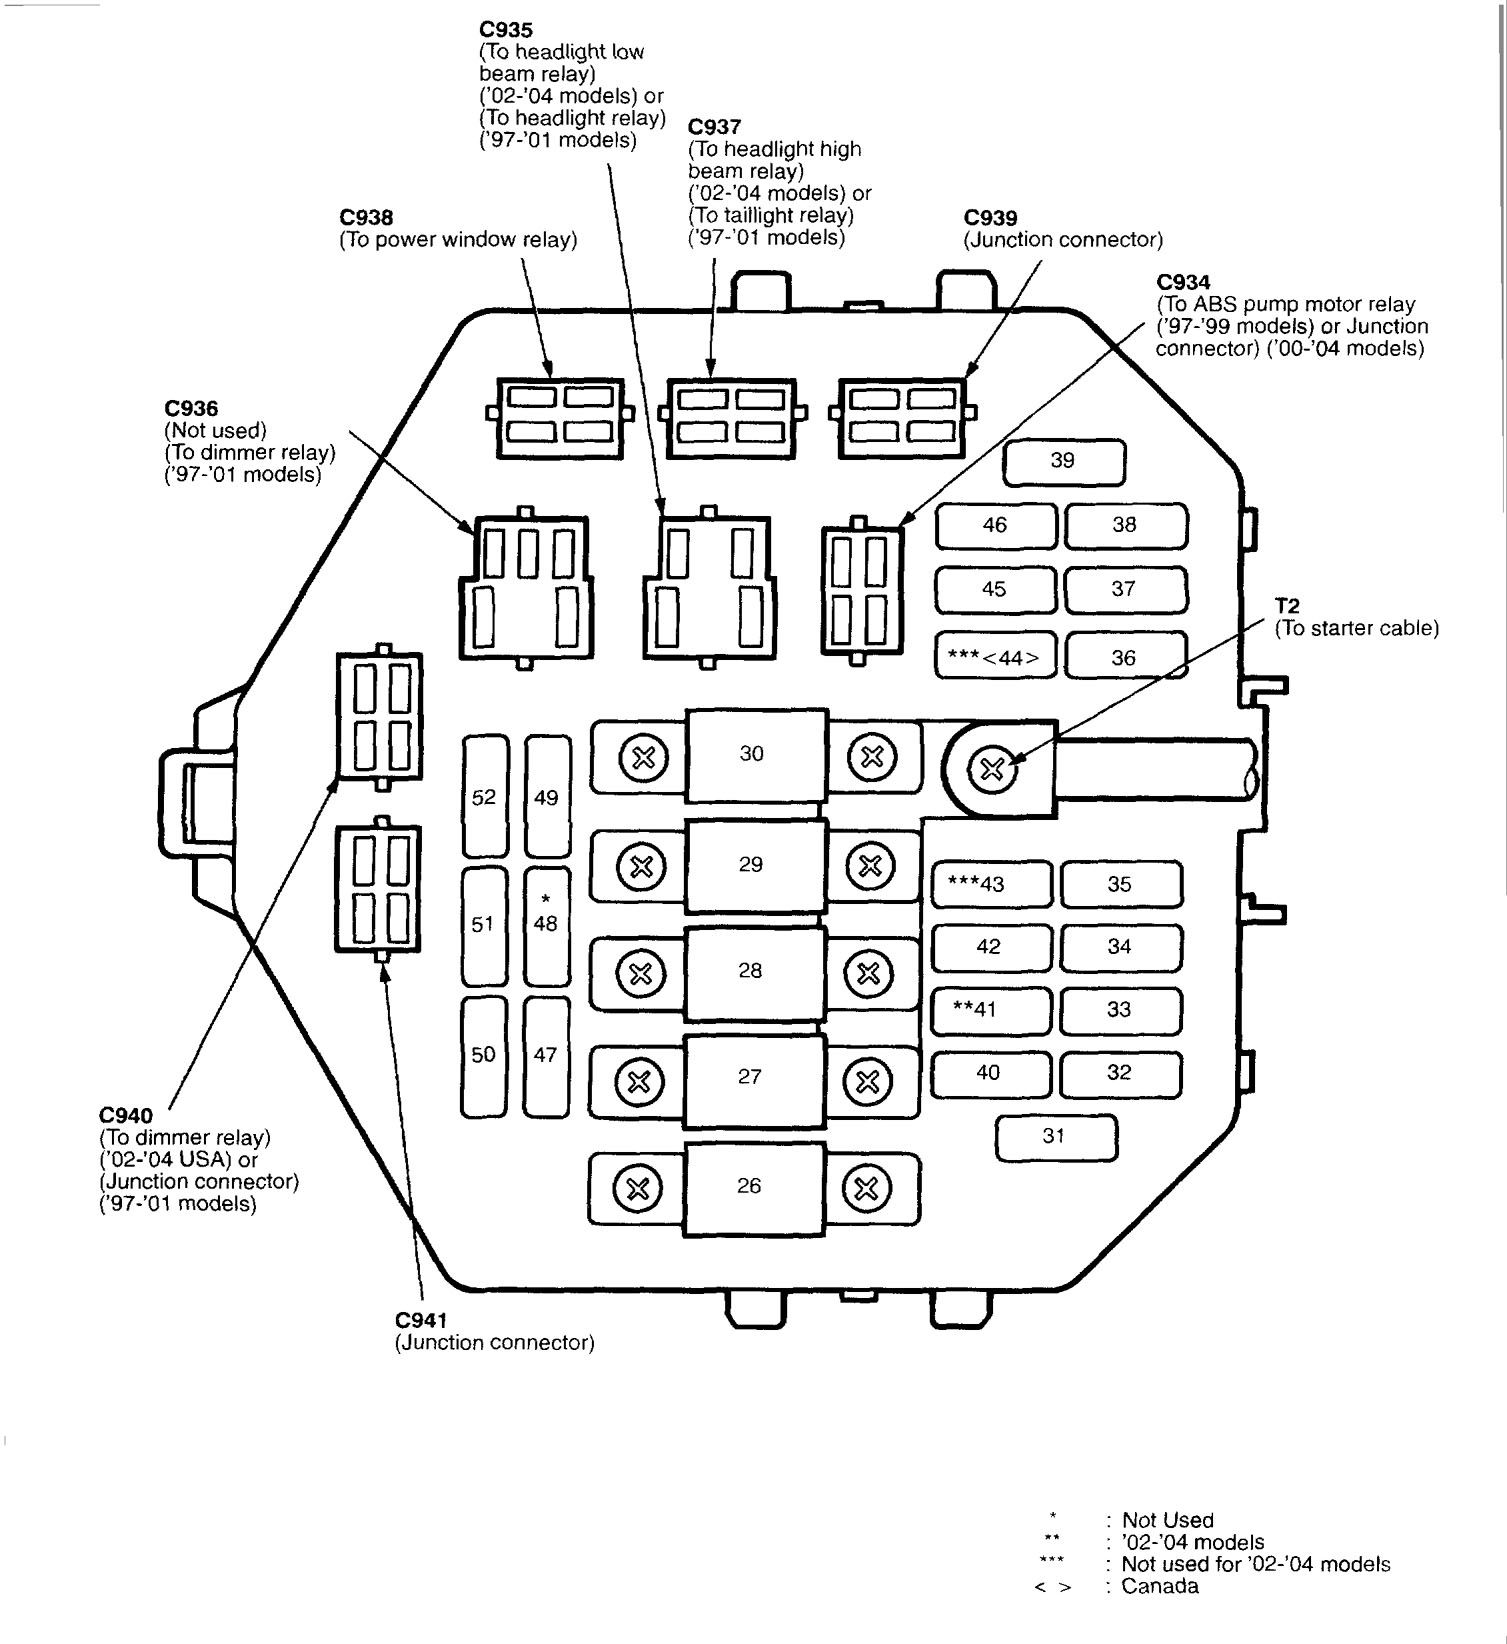 Acura Nsx 1997 2004 Wiring Diagrams Fuse Panel Carknowledge 2000 Chevy Blazer 2 Door Under Hood Box Diagram